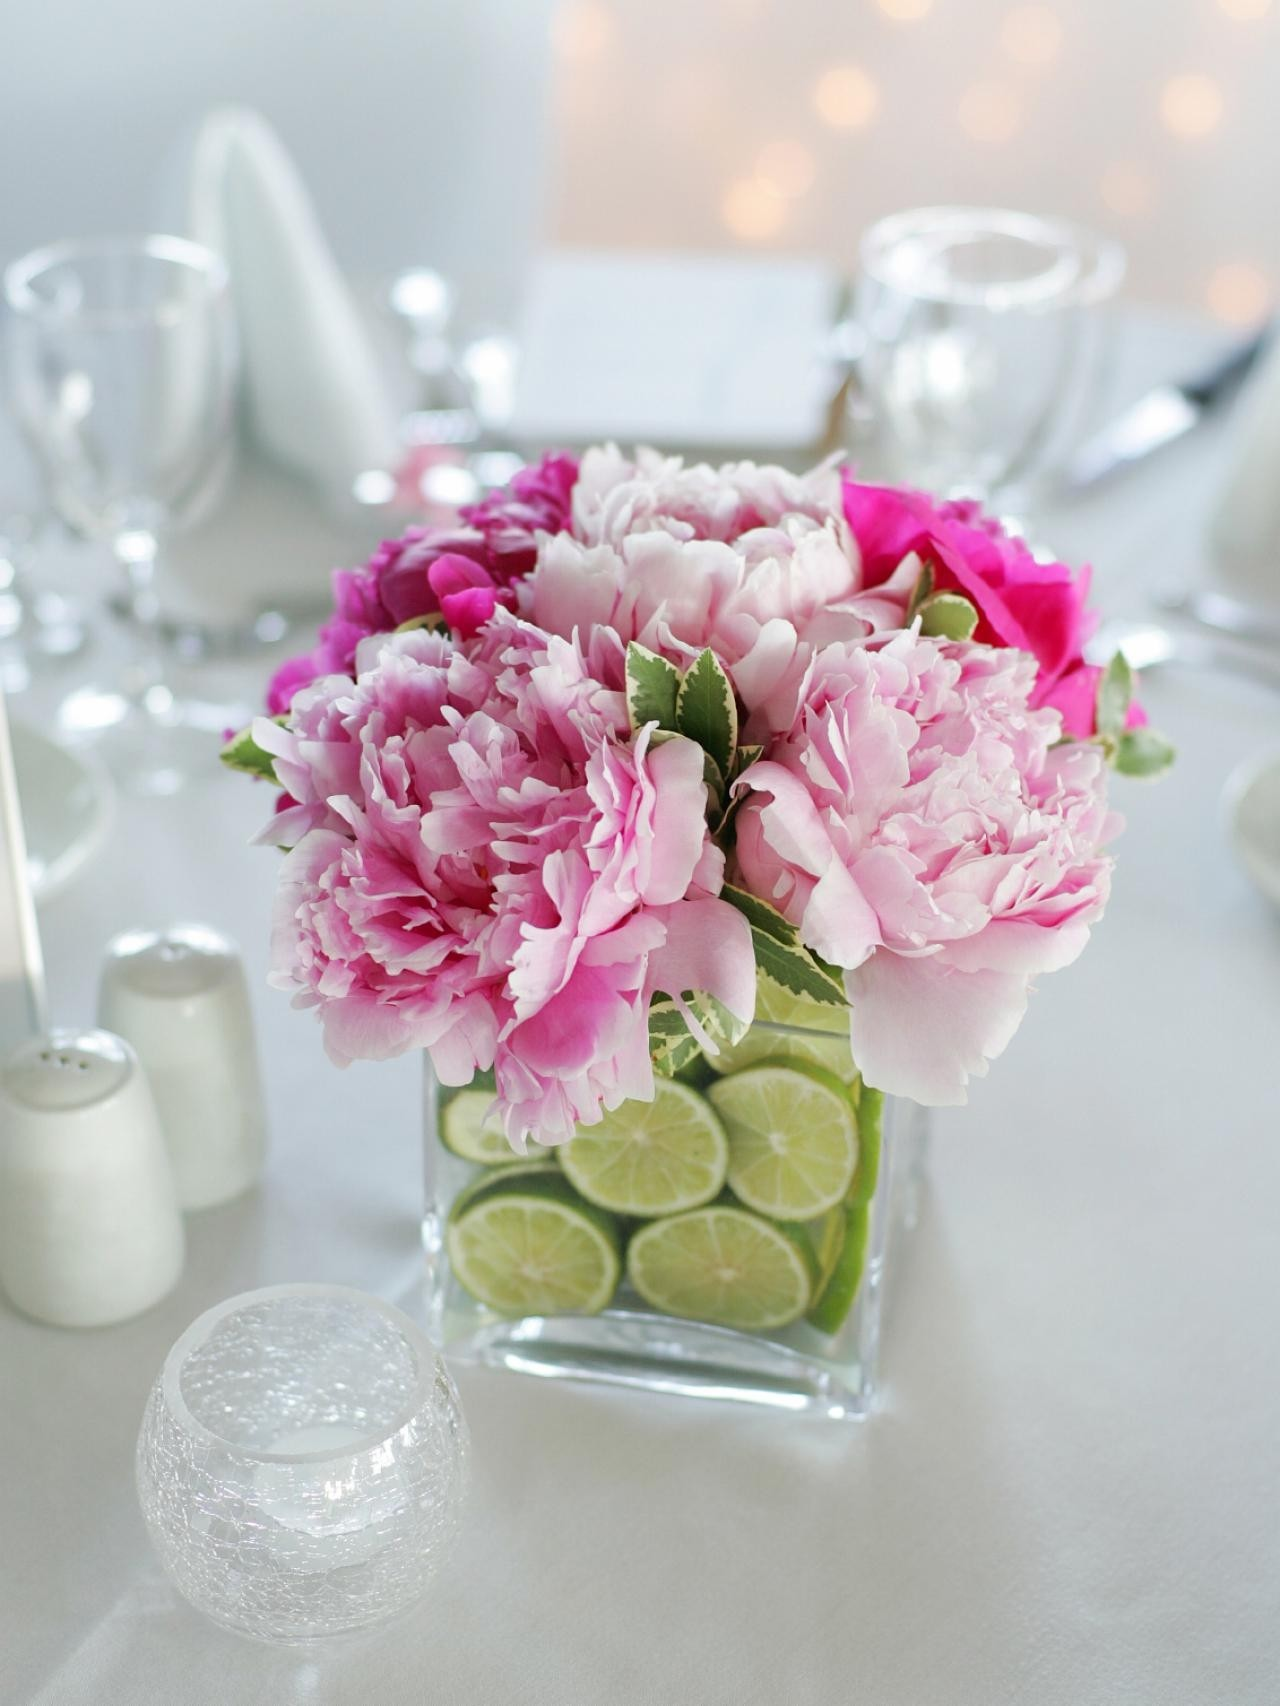 Silk Floral Arrangements For Dining Room Table